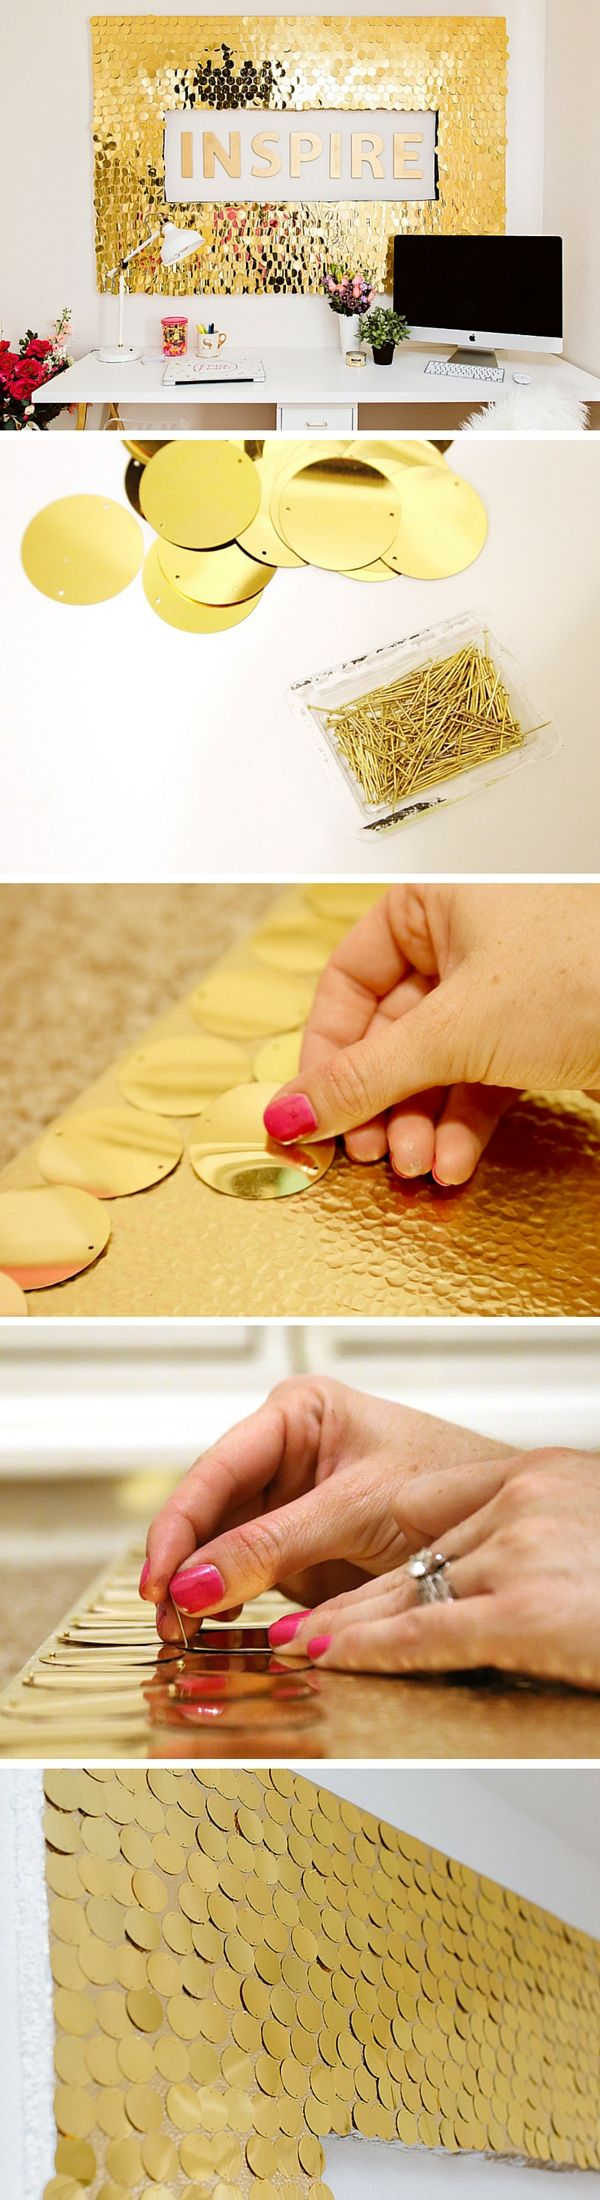 10 best DIY images on Pinterest | Furniture, Shelving and Bedrooms